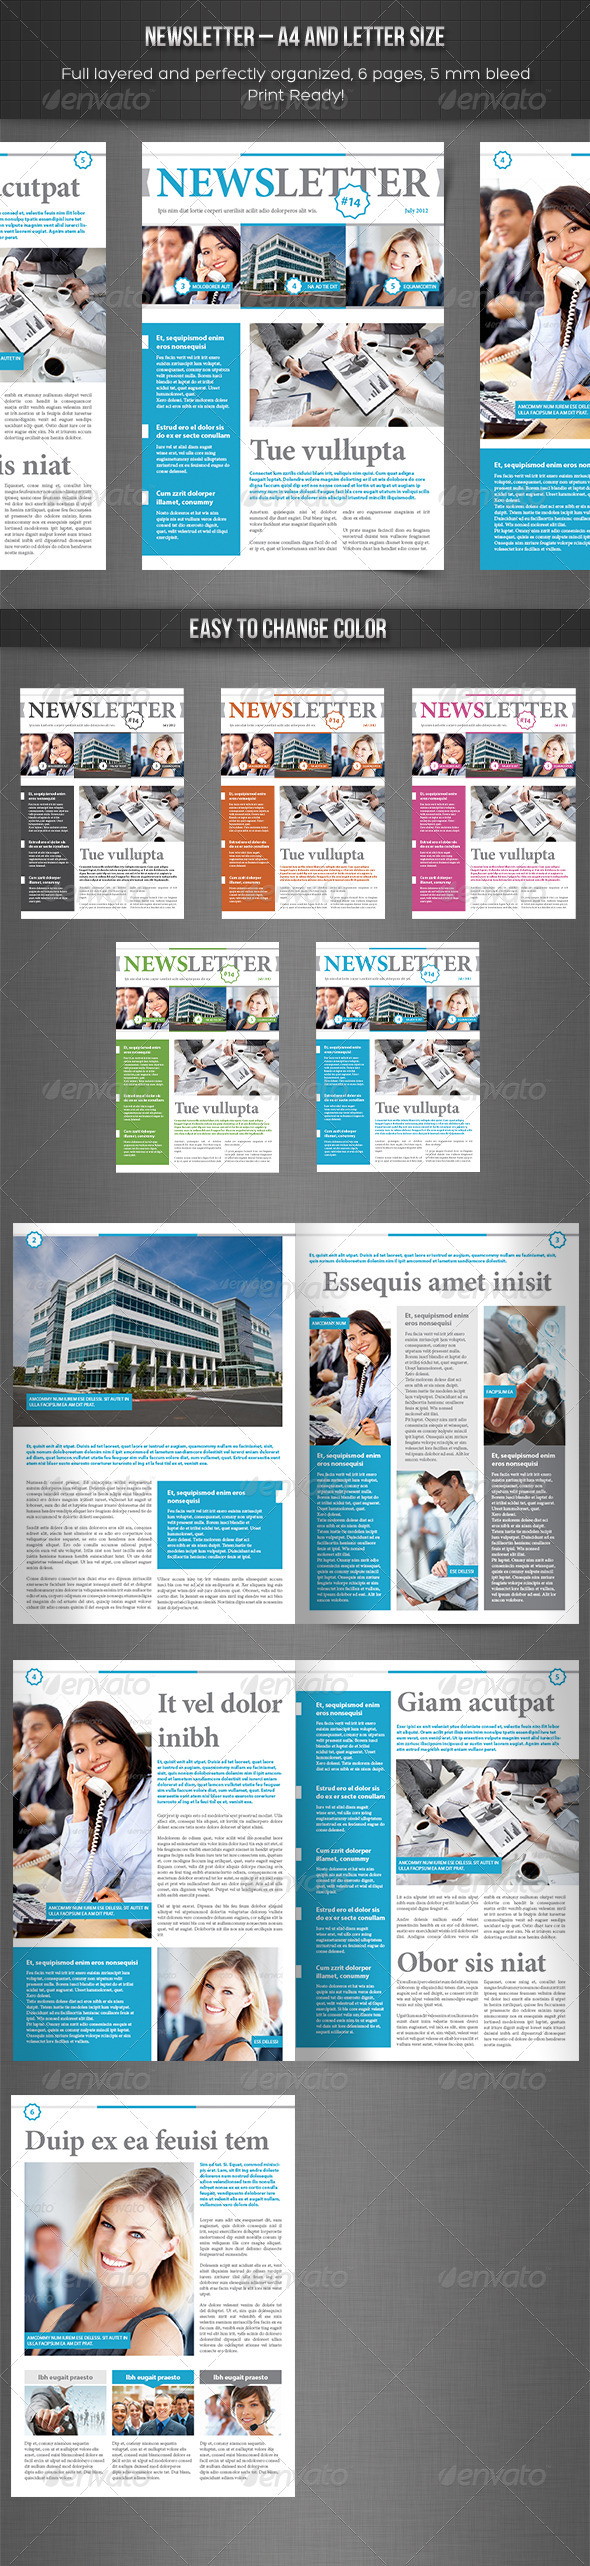 GraphicRiver Newsletter vol 3 Indesign Template 2589537